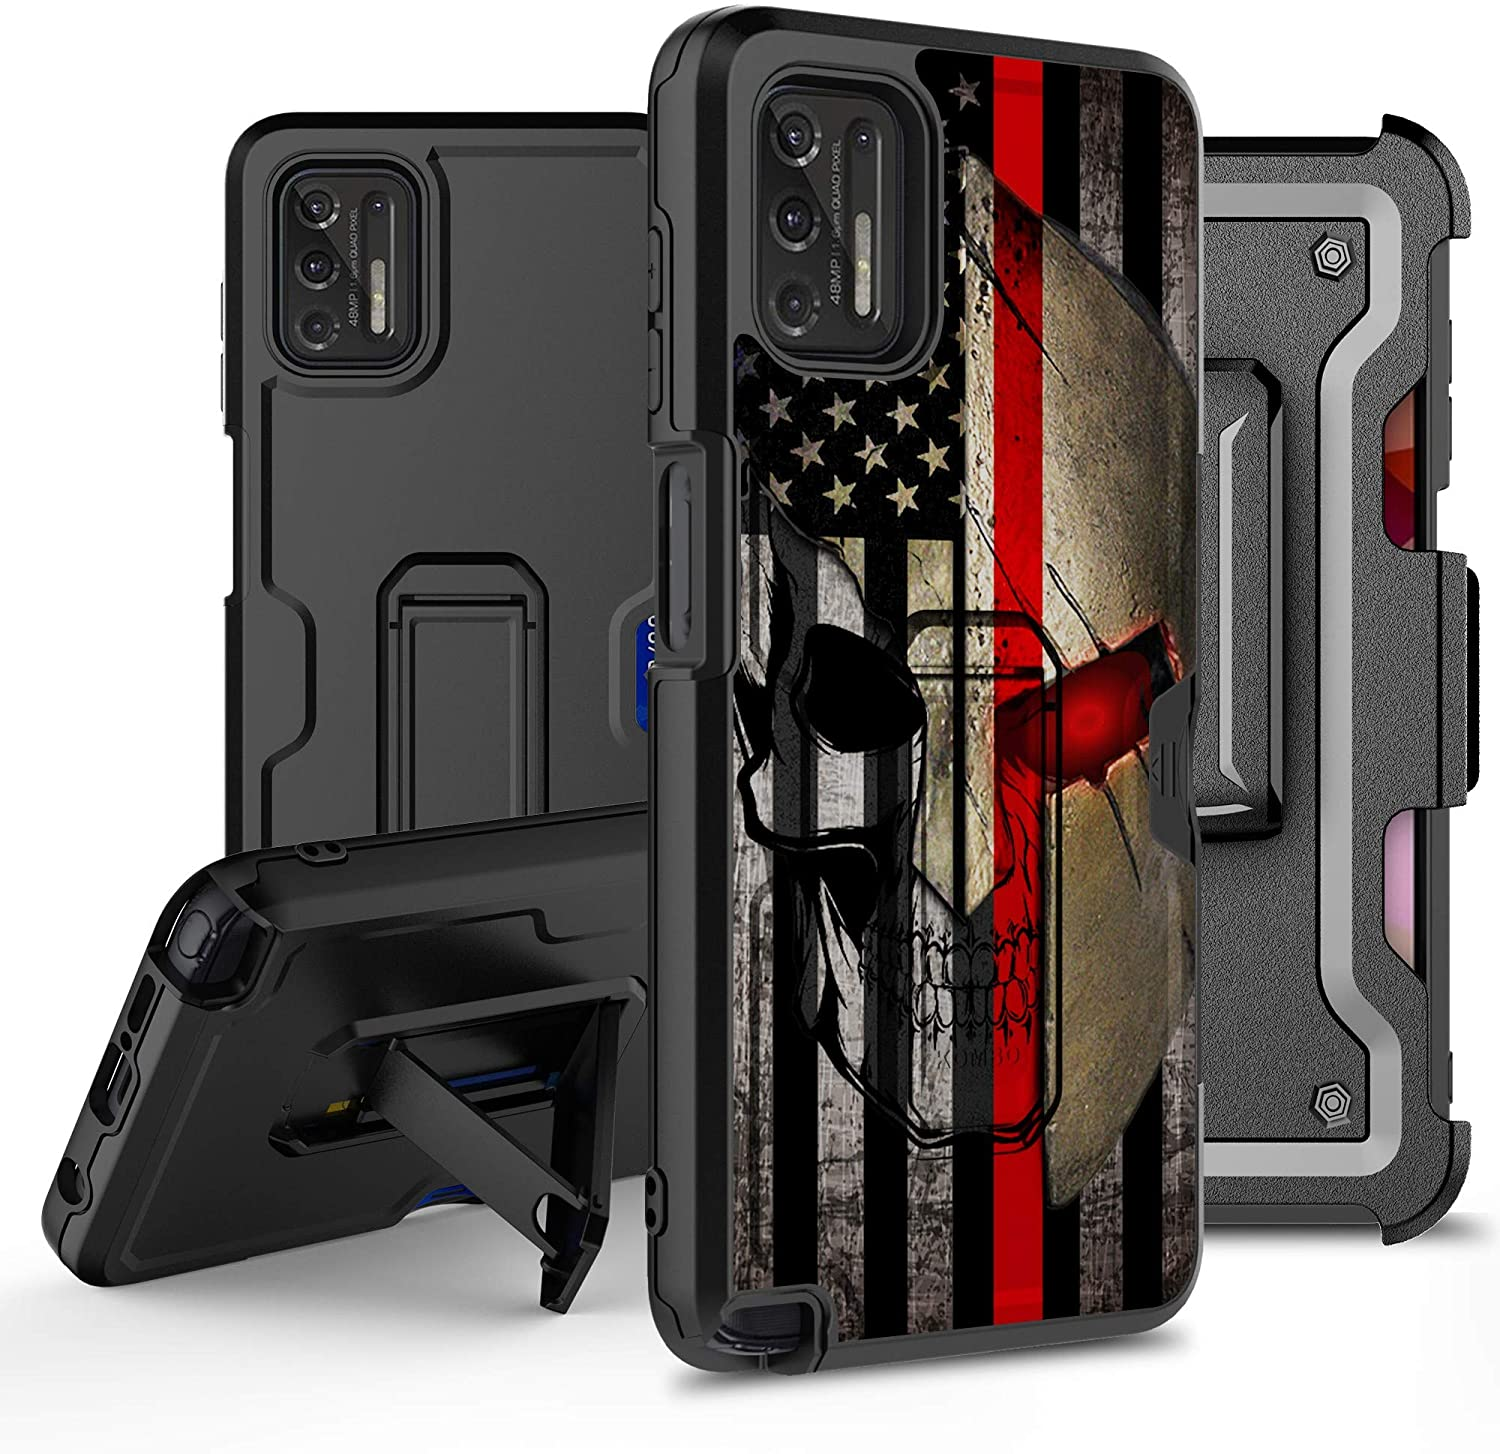 BEYOND OFFicial site CELL Armor 25% OFF Kombo Case Compatible 2021 Stylus with G Moto